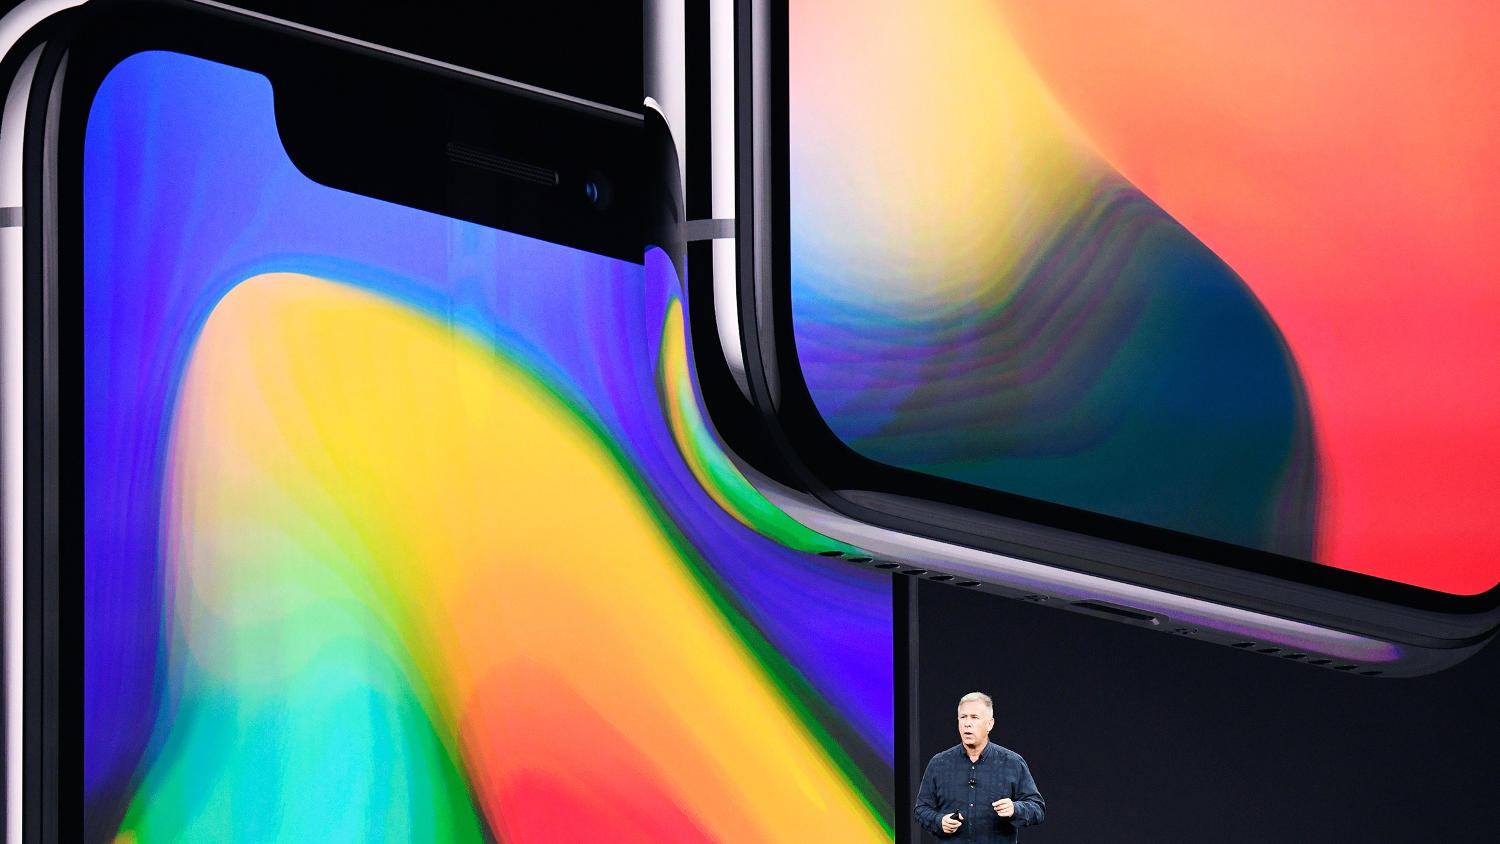 Analyst spoke about the shortage of iPhone X